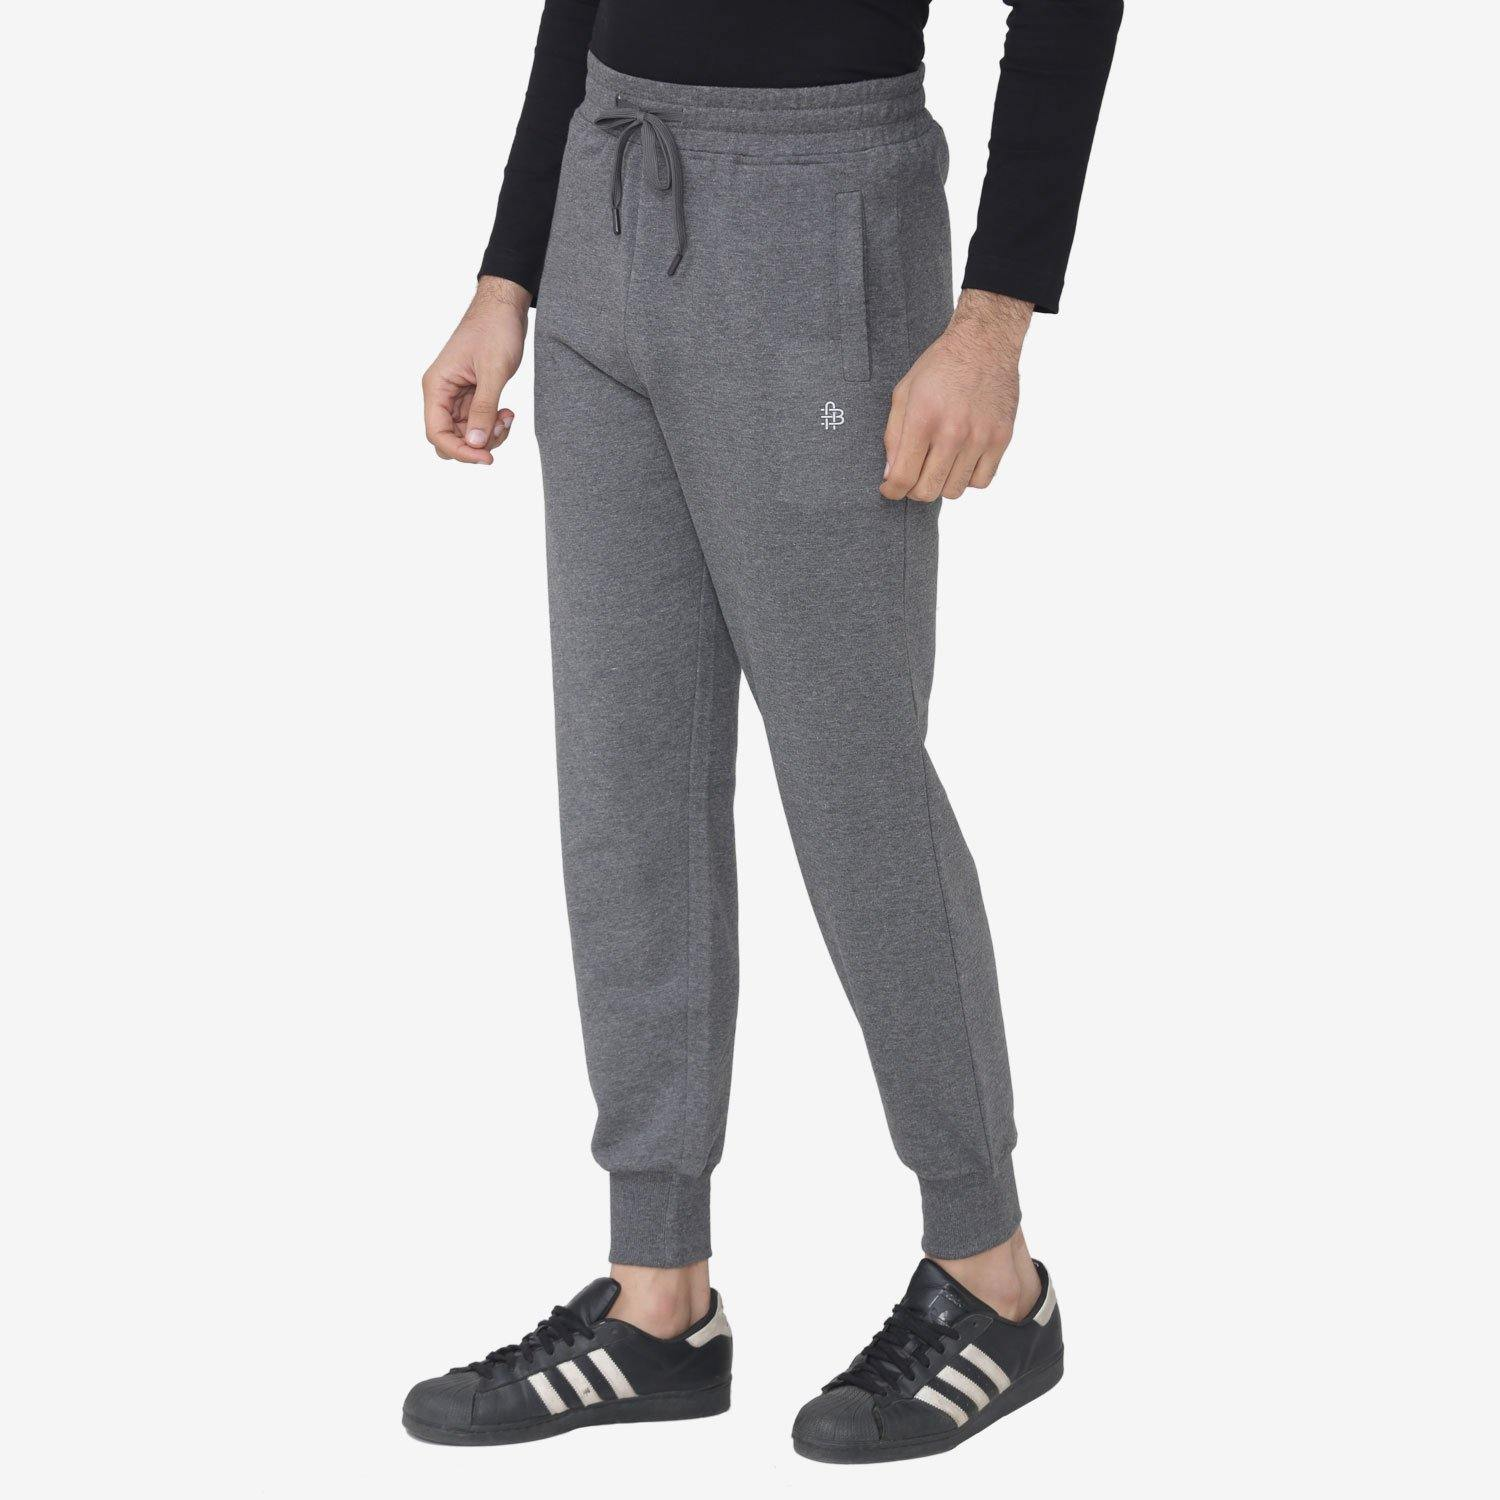 Winter  Joggers Pants